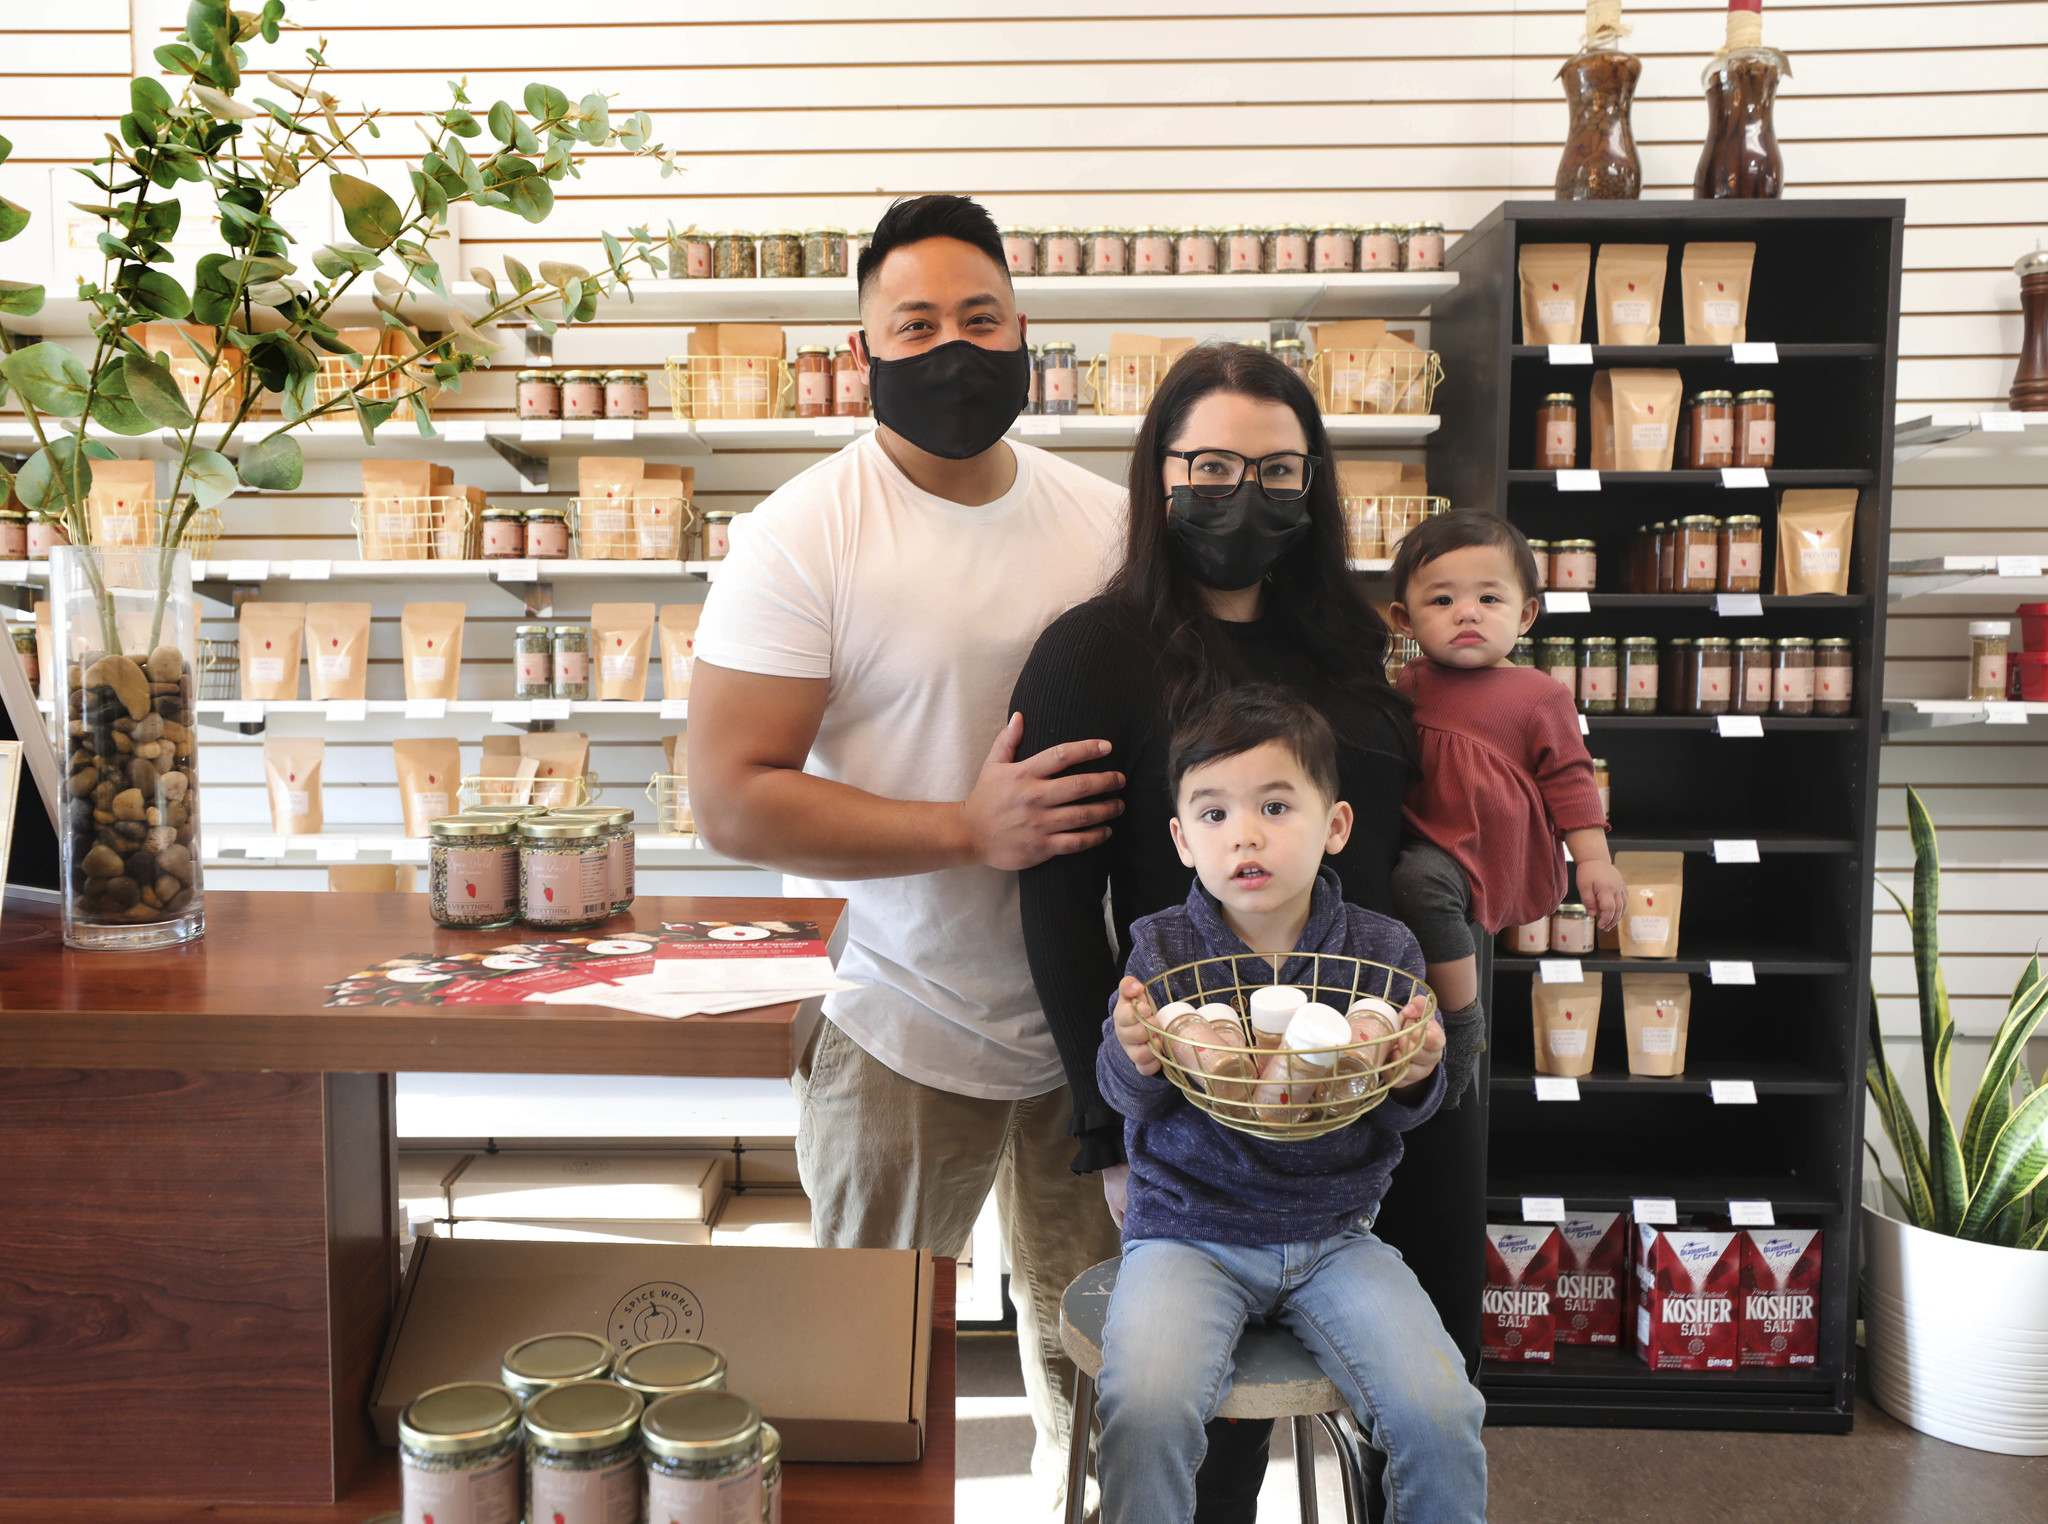 RUTH BONNEVILLE / WINNIPEG FREE PRESS</p><p>Spice World owners Aaron Delos Santos, his wife Madilyn and children Jude, 2 and Emme, 9 months, have been making homemade spice blends at their store on Marion Street since 1997.</p>